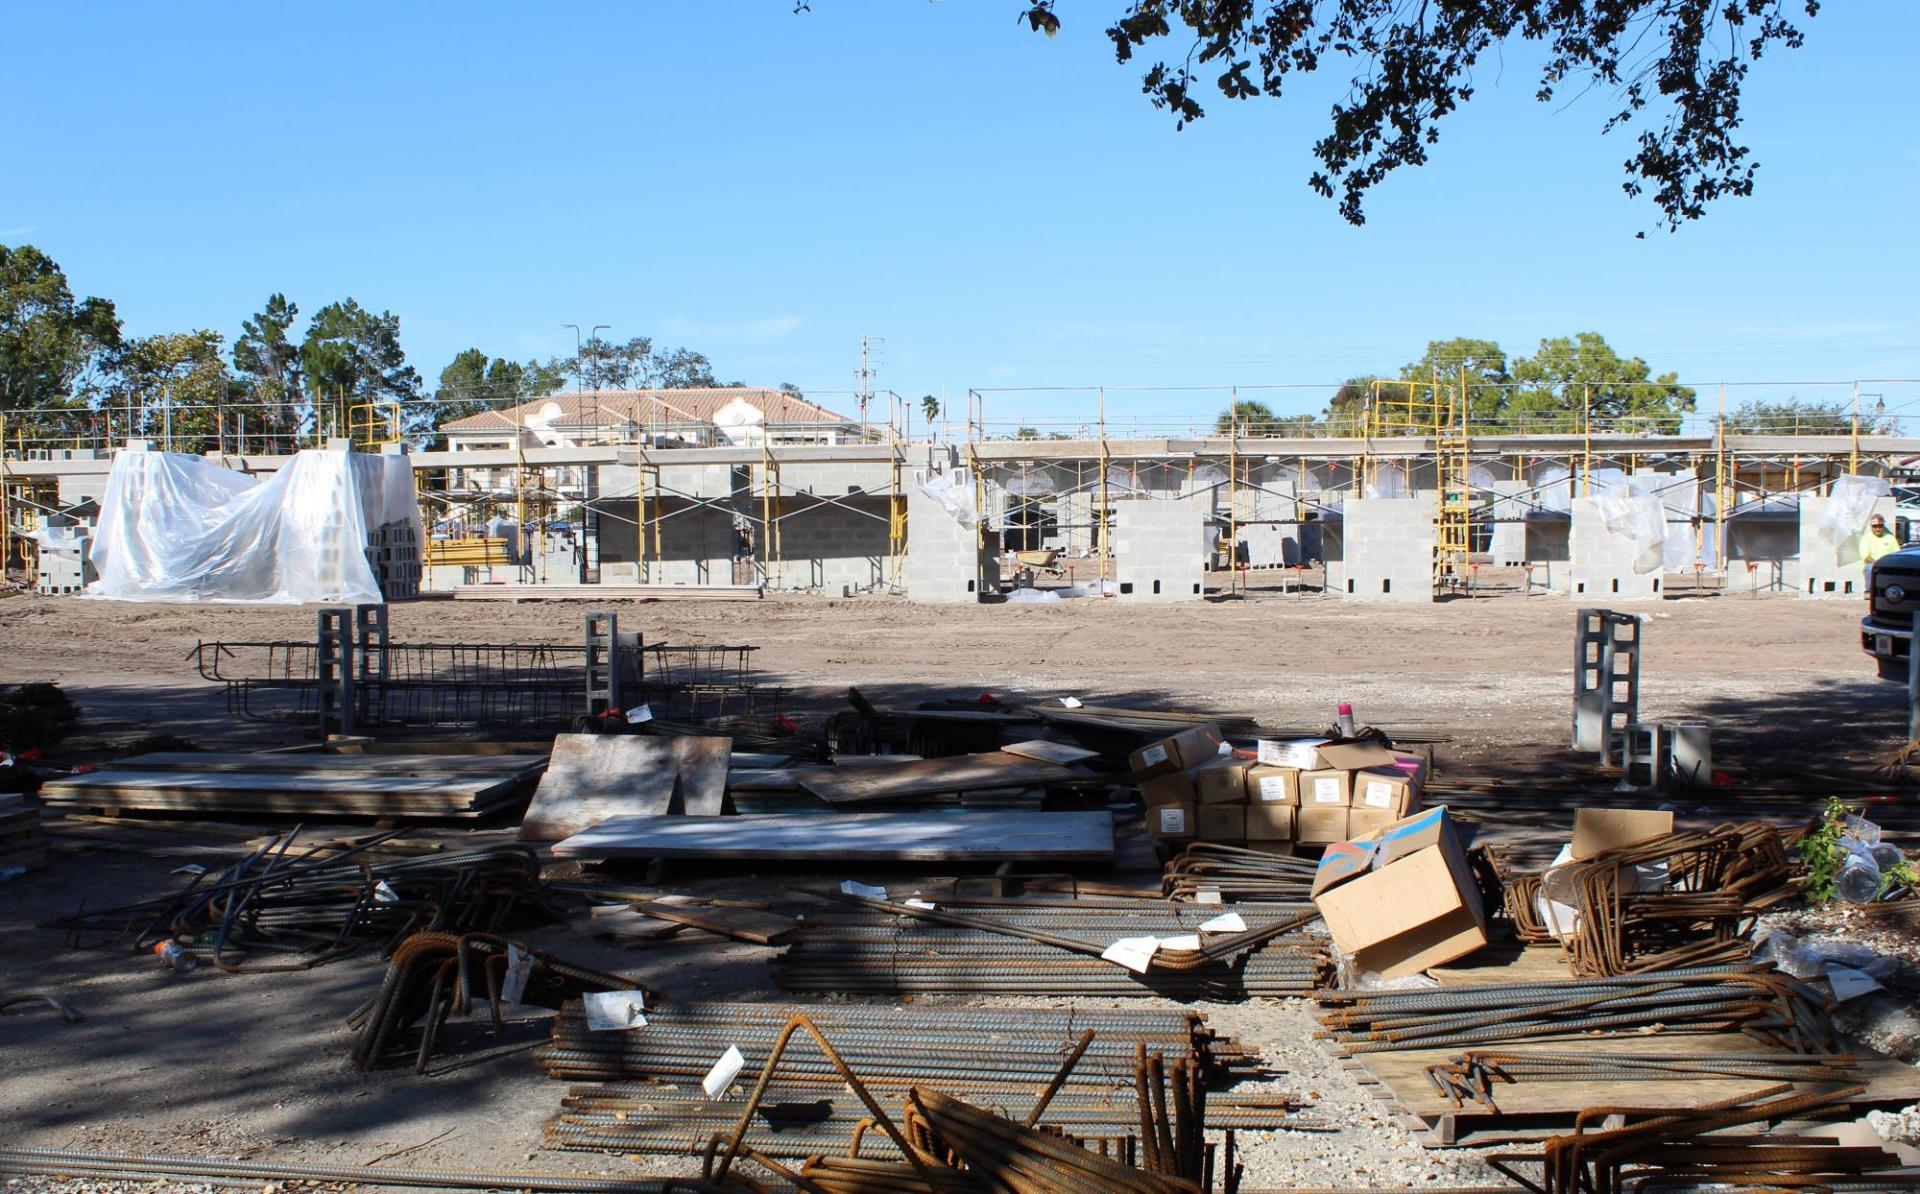 William H. Jervey, Jr. Venice Library in the making